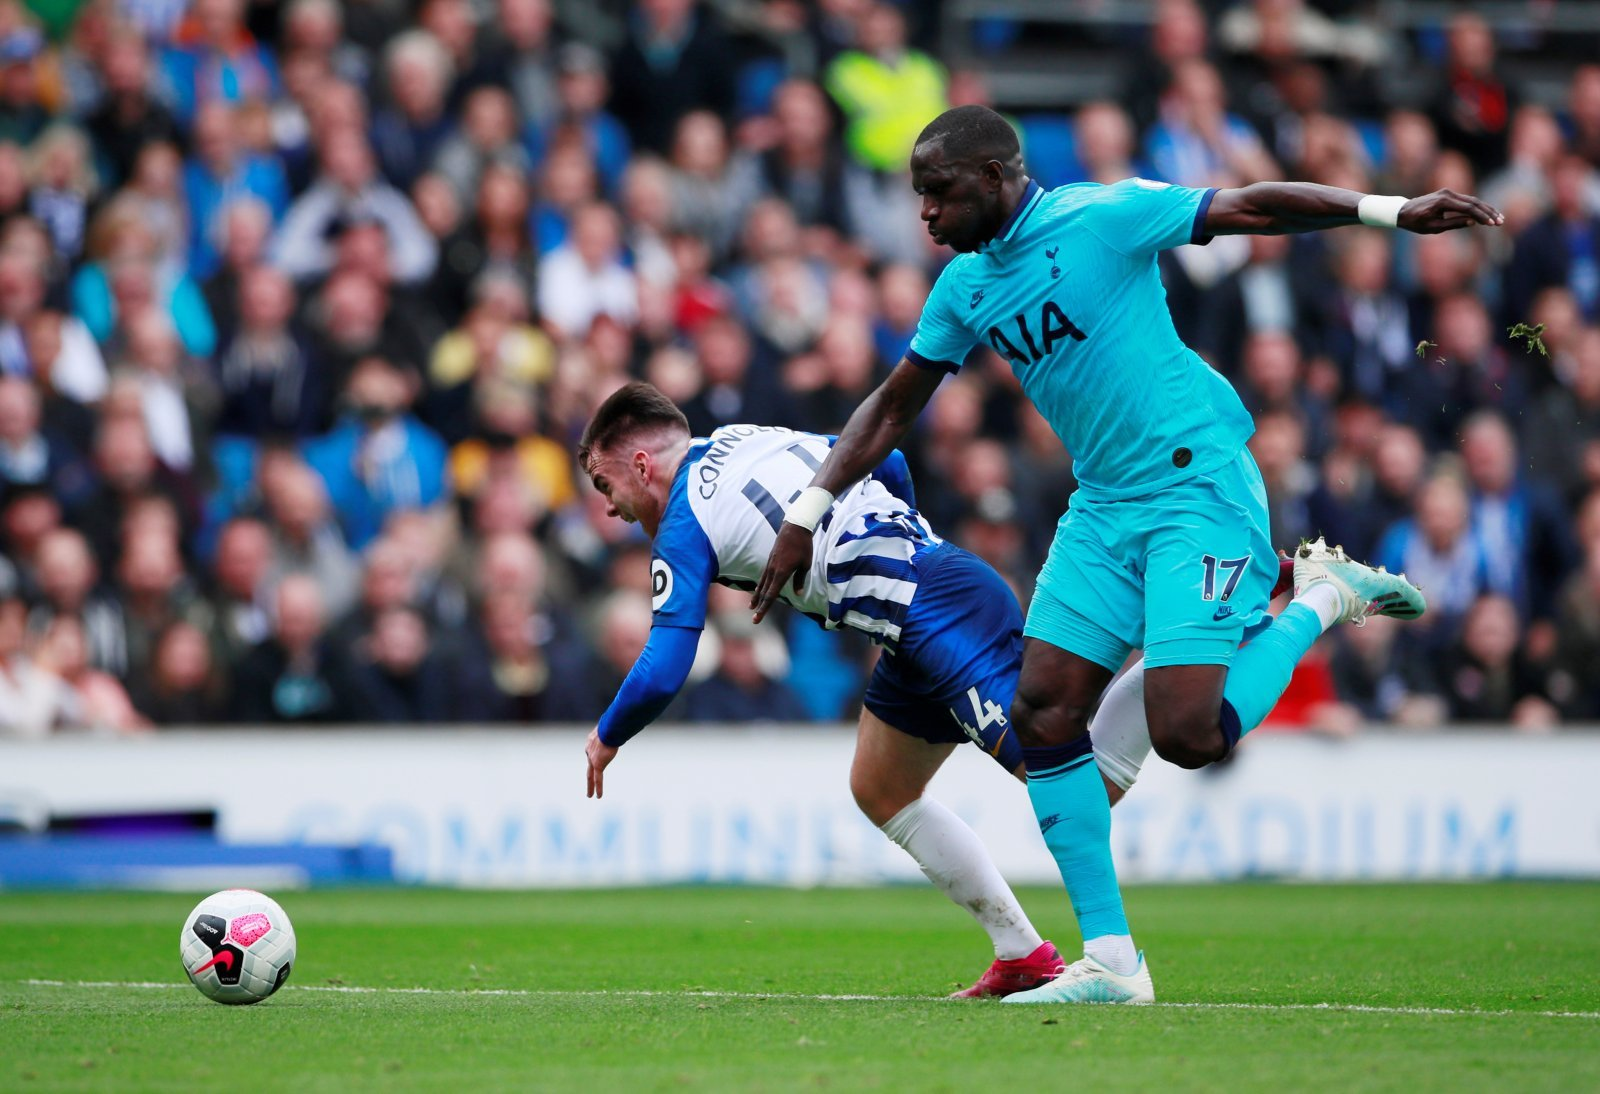 Tottenham Hotspur: Fans lay into Moussa Sissoko after emergence of statistic